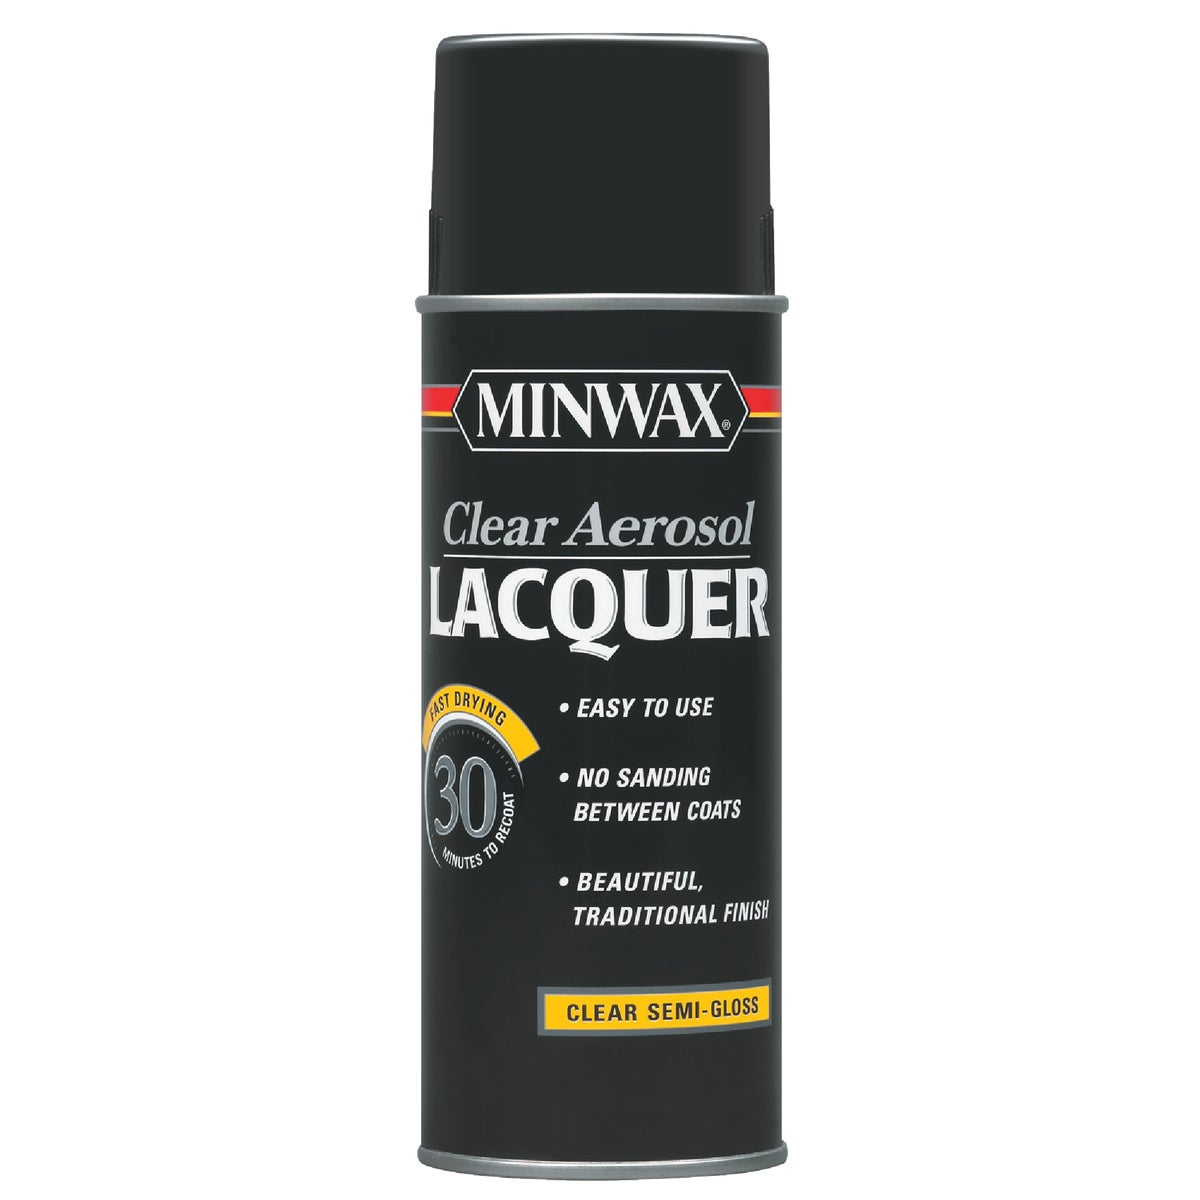 CLEAR S/G SPRAY LACQUER - 15205 by Minwax Company